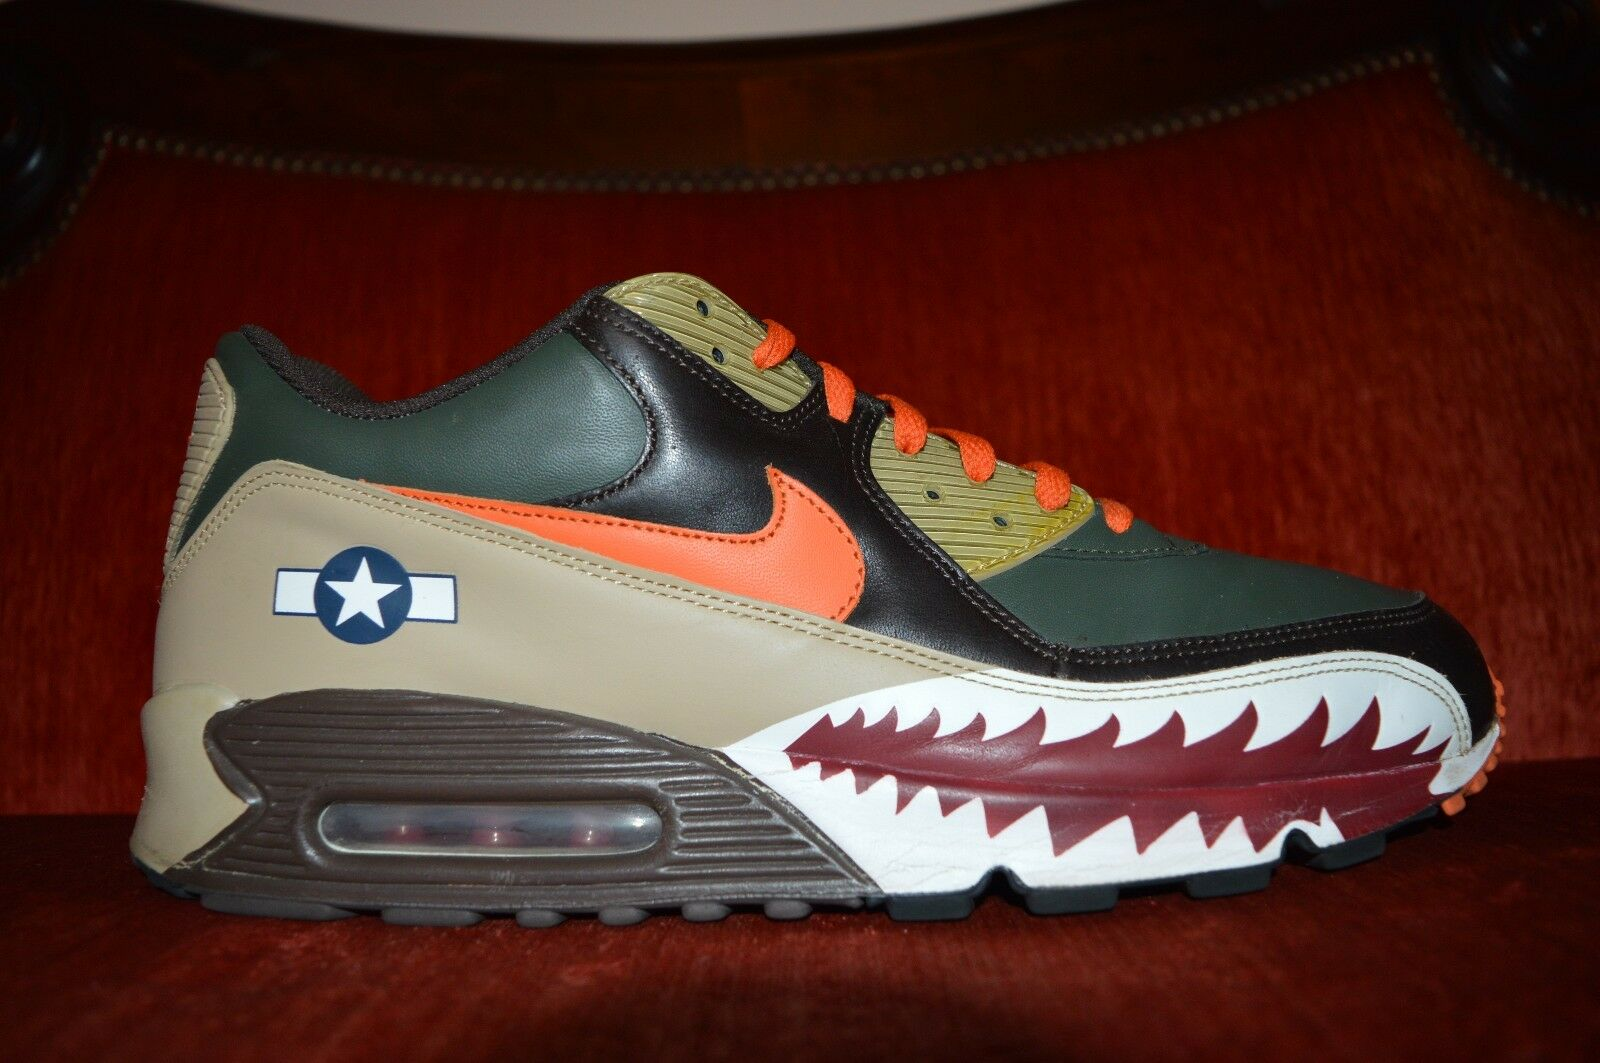 60230cf8cb8 ... coupon for 30off nike air max 90 premium warhawk armed forces 315728  381 size 13 9e8ab